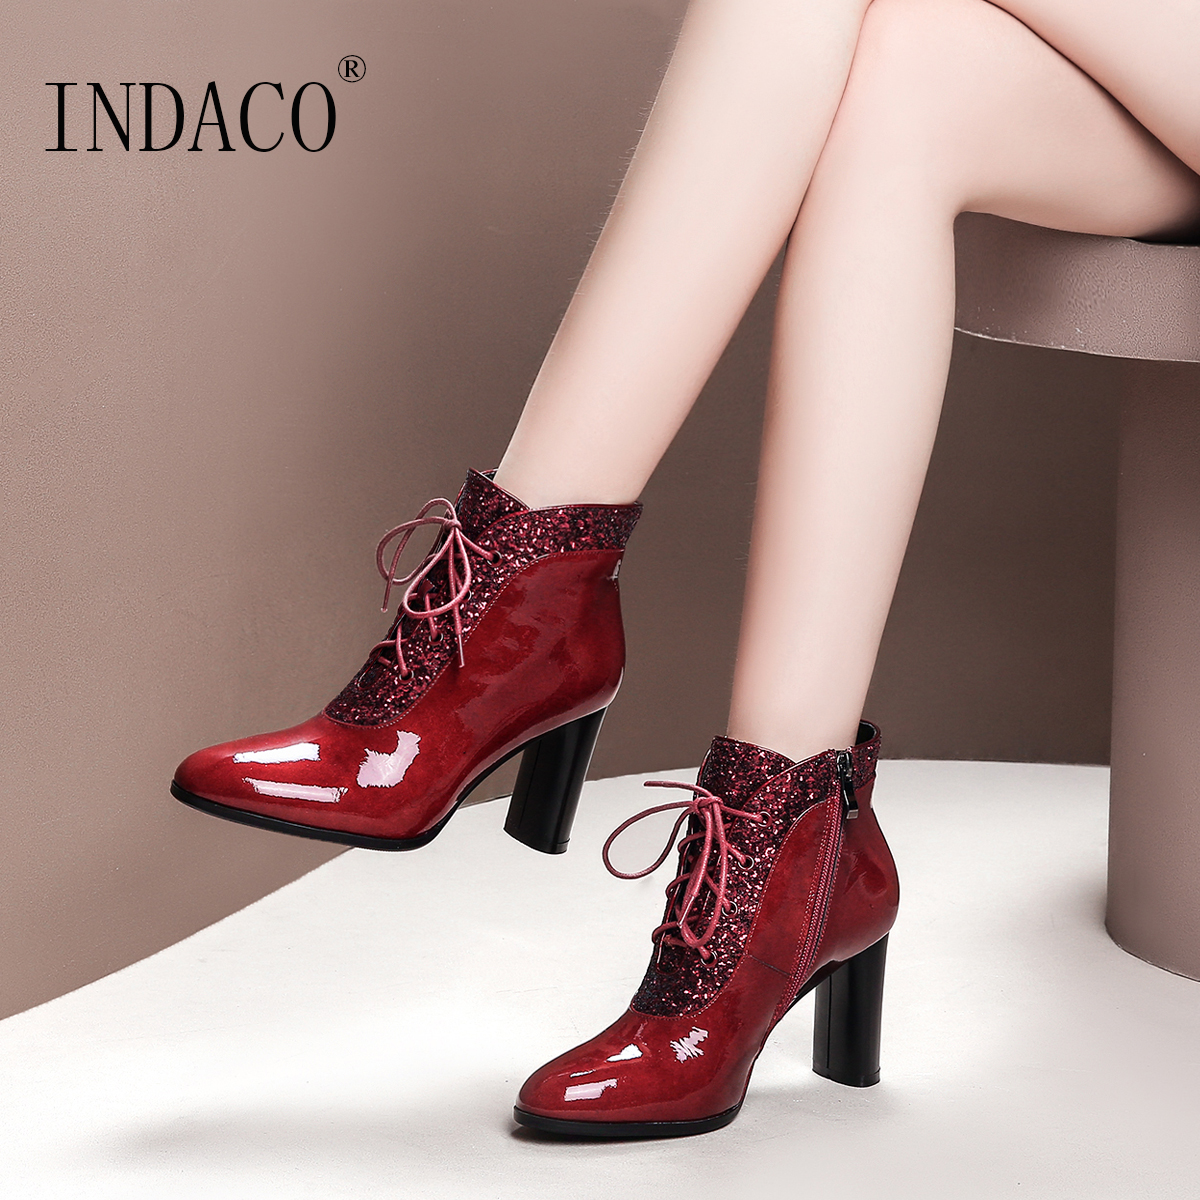 Winter Boots Women Black Burgundy 2018 Boots Women Leather Fashion Sexy Ankle Boots For women цена